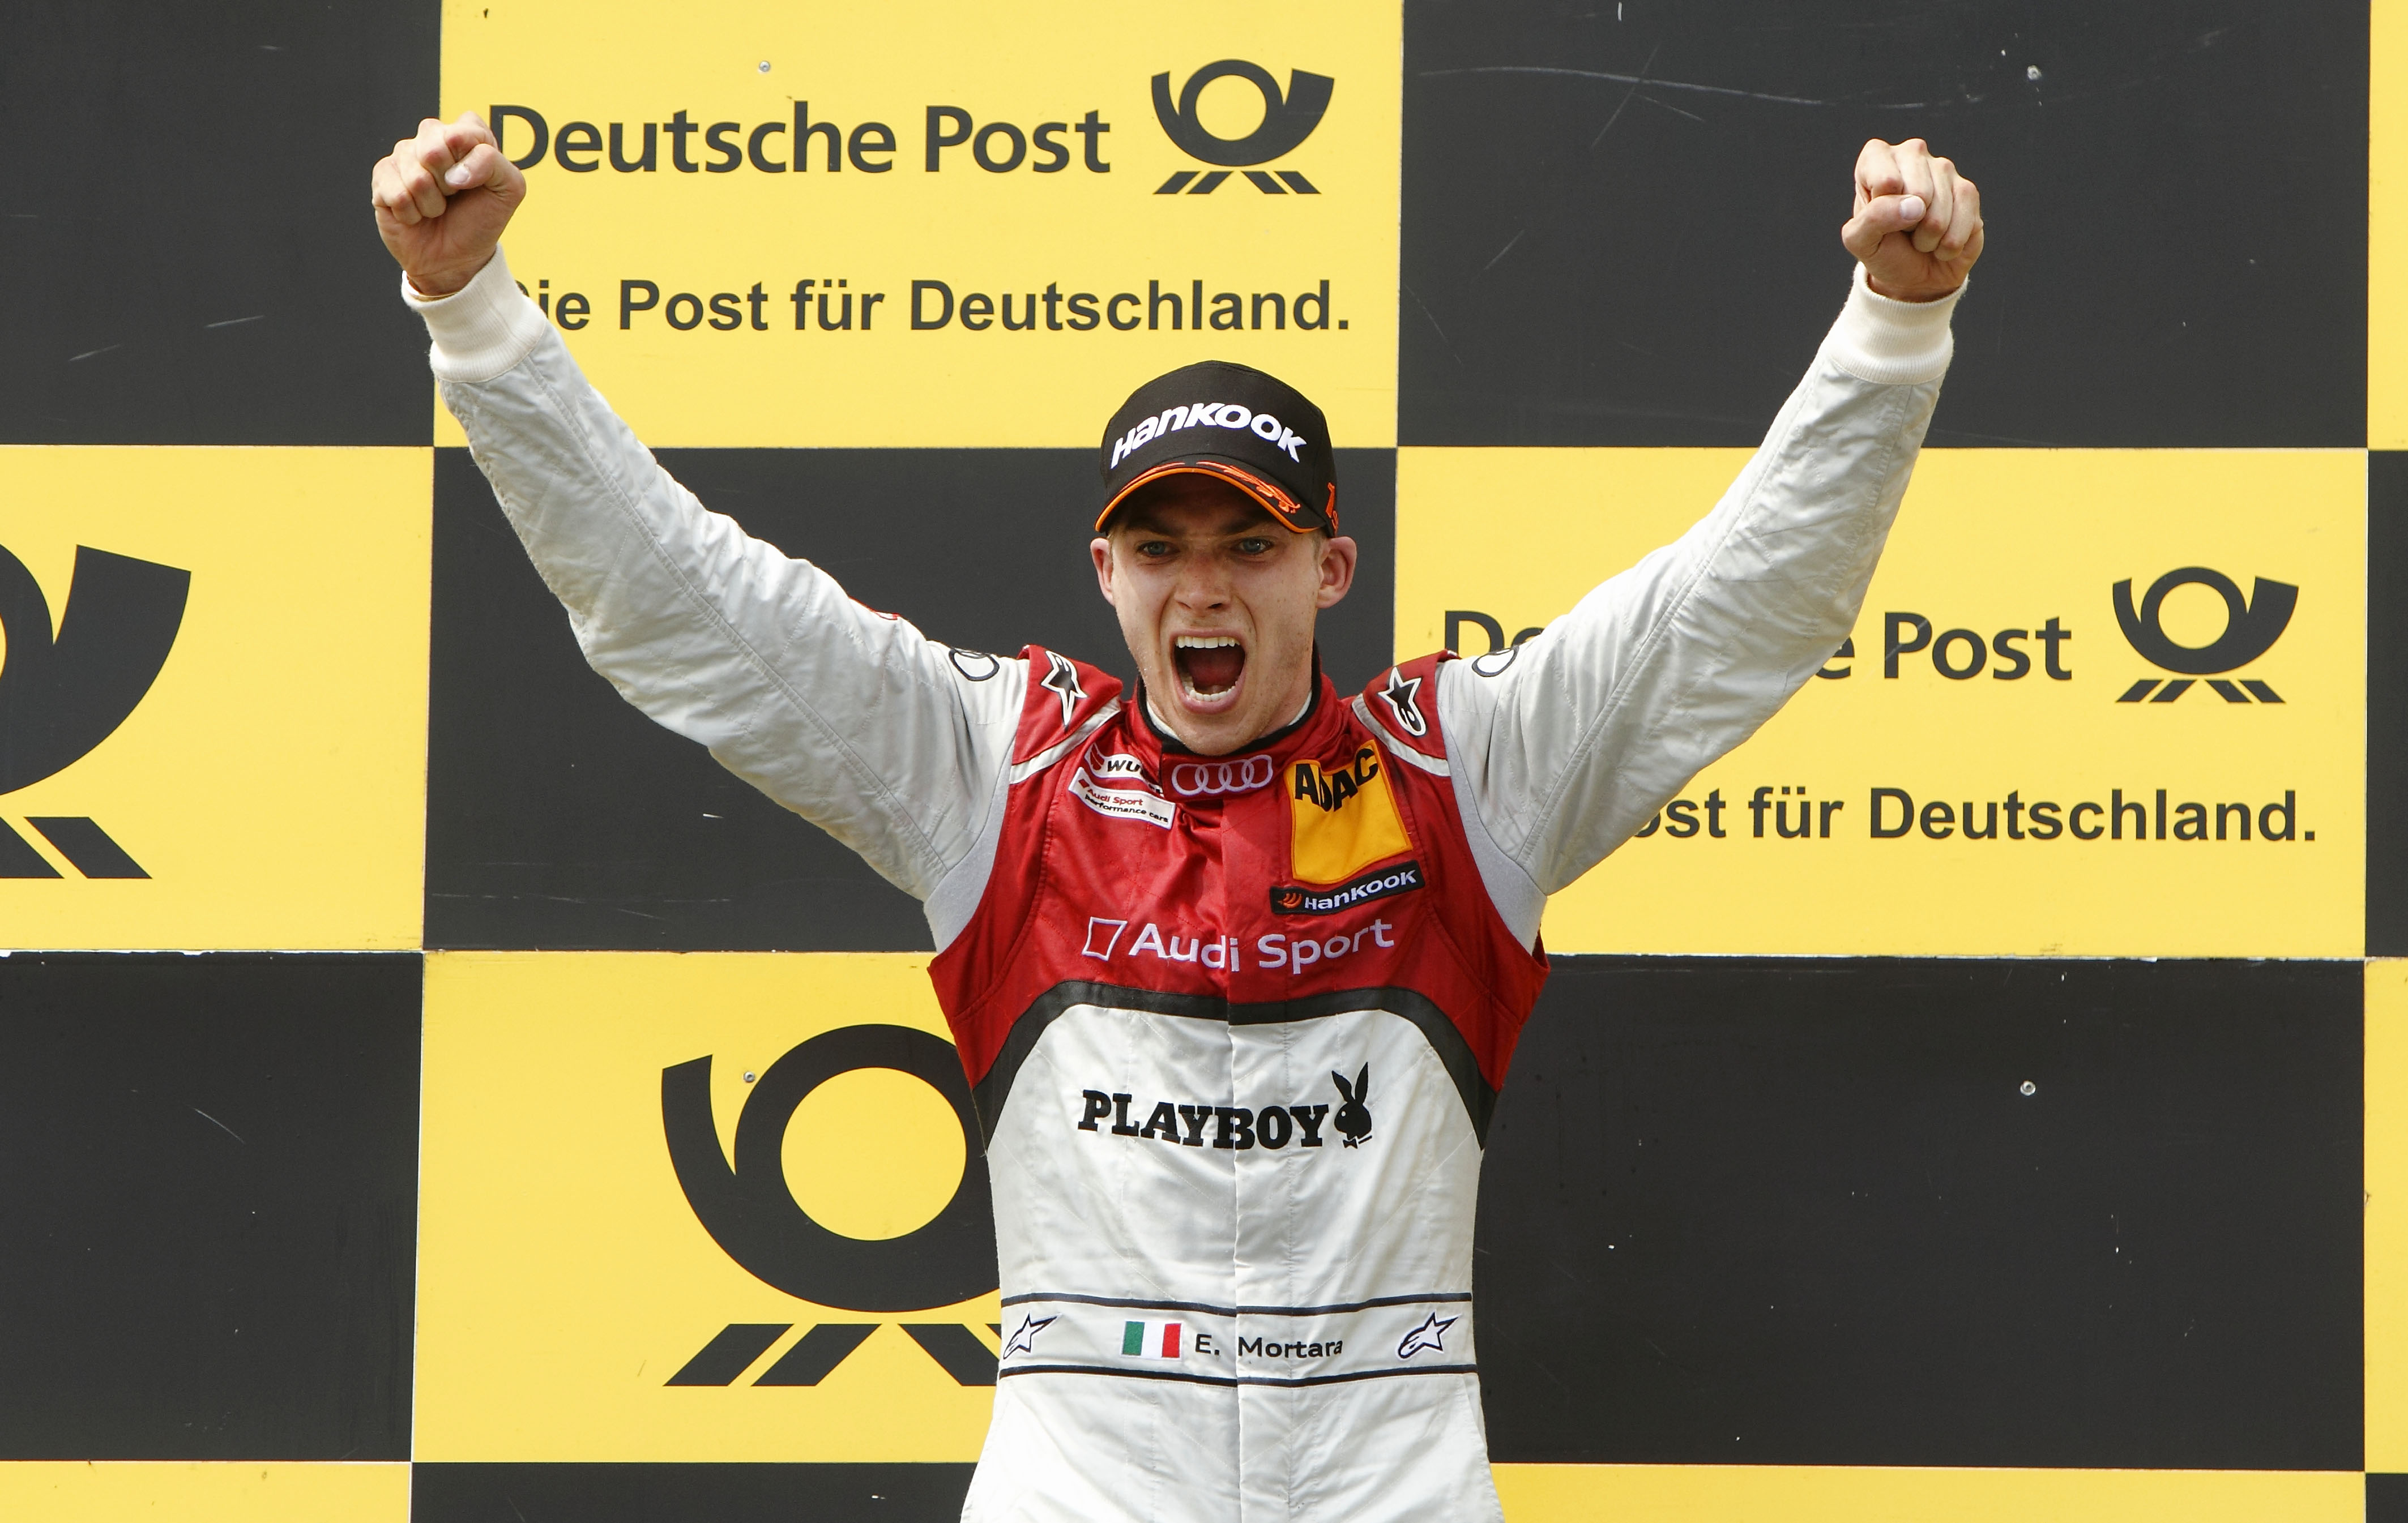 Edo Mortara showed his skills with two impressive wins in the A5 DTM (Image credit: DTM Media)